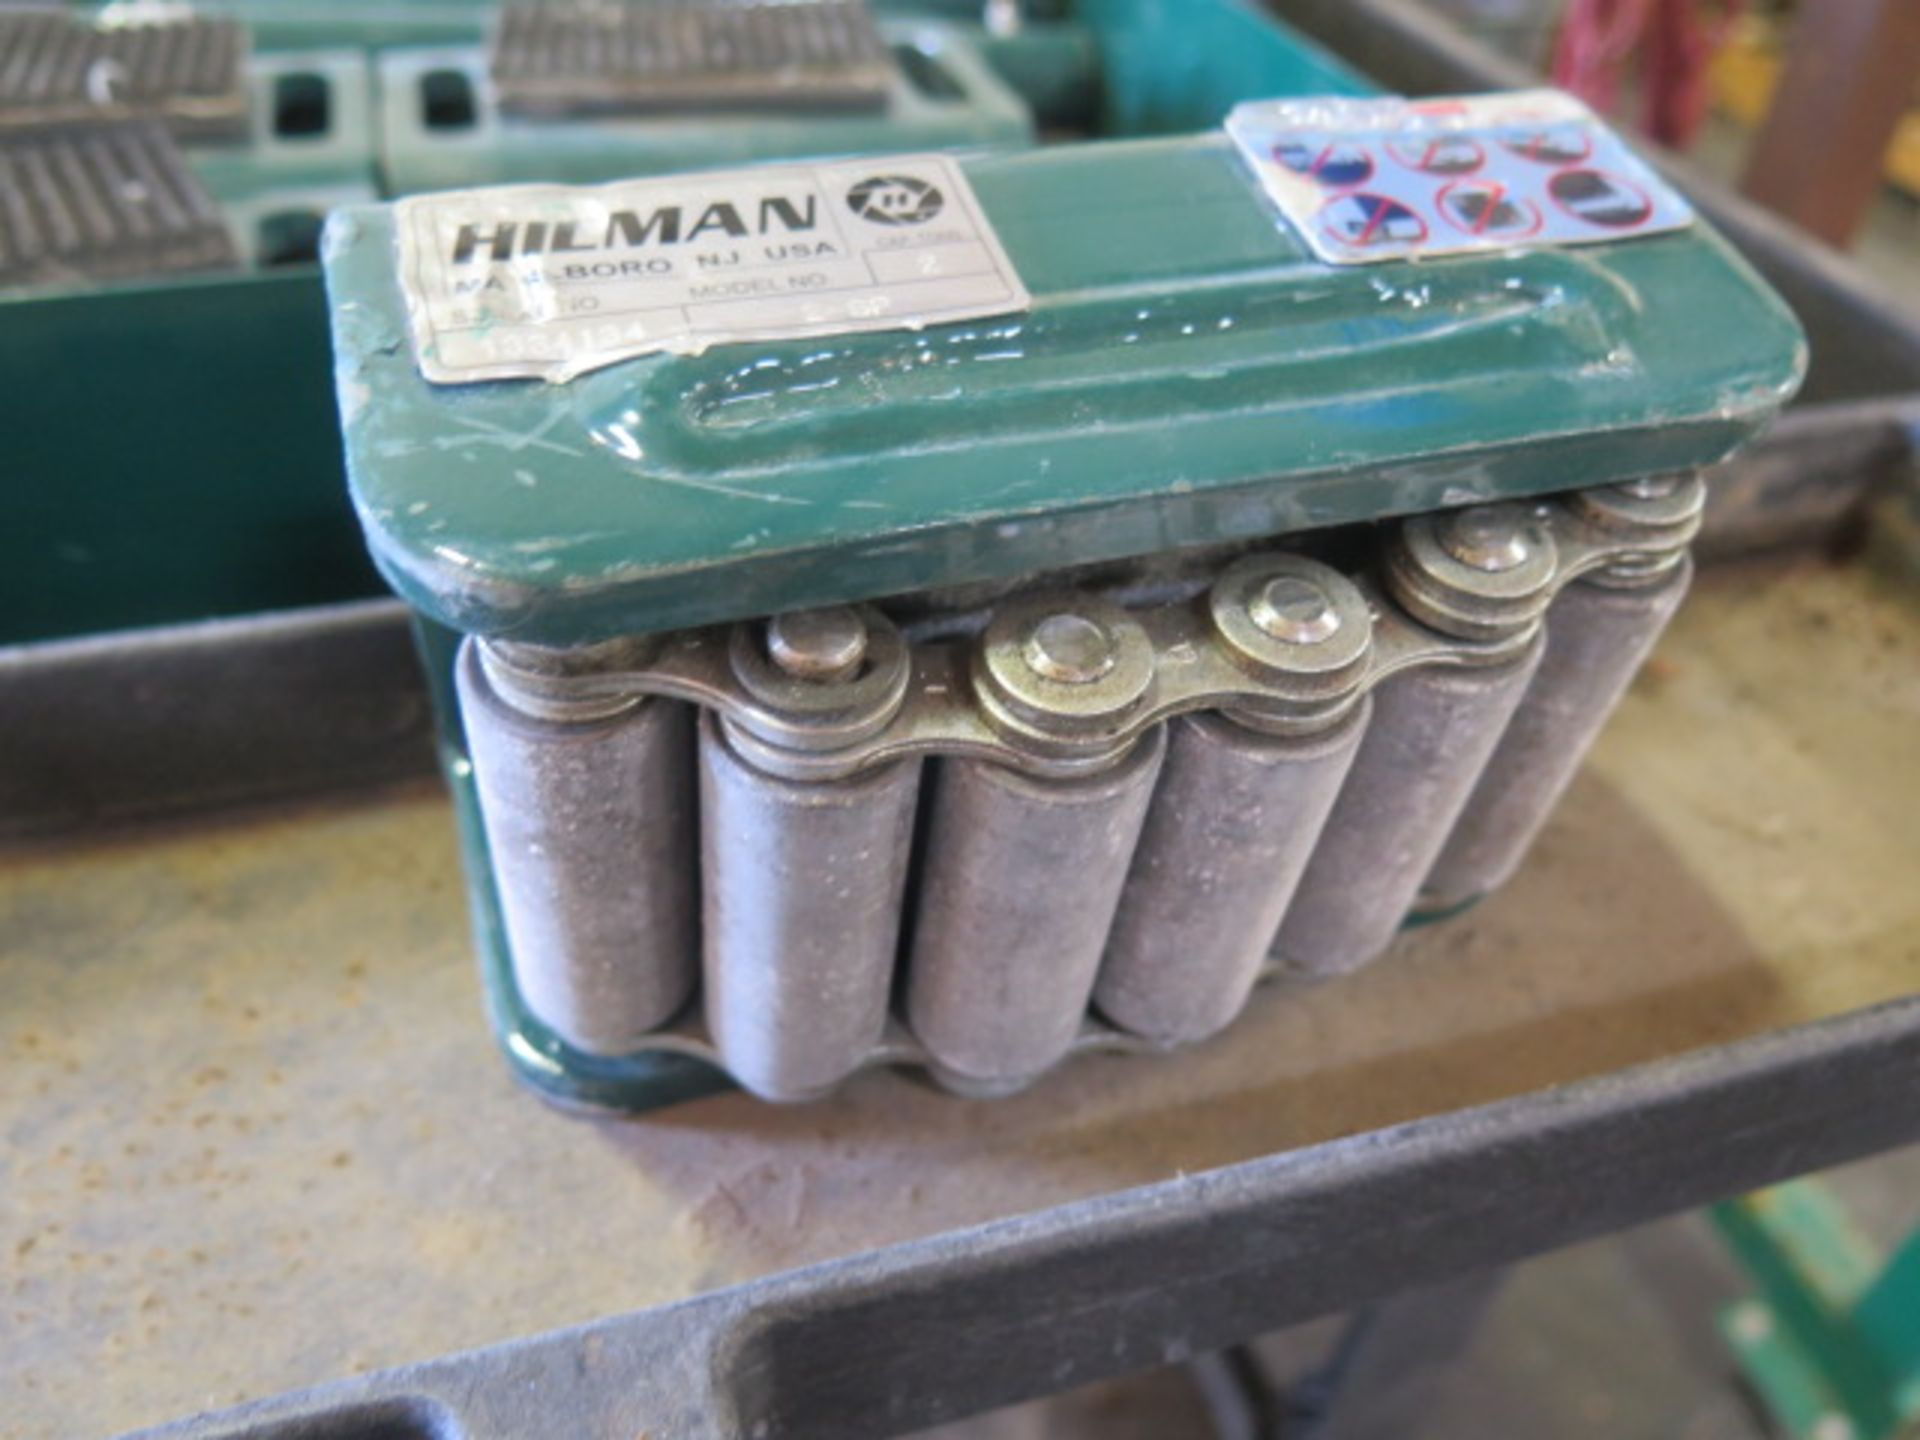 Hilman 8-Ton Machinery Dolley Set (SOLD AS-IS - NO WARRANTY) - Image 6 of 8